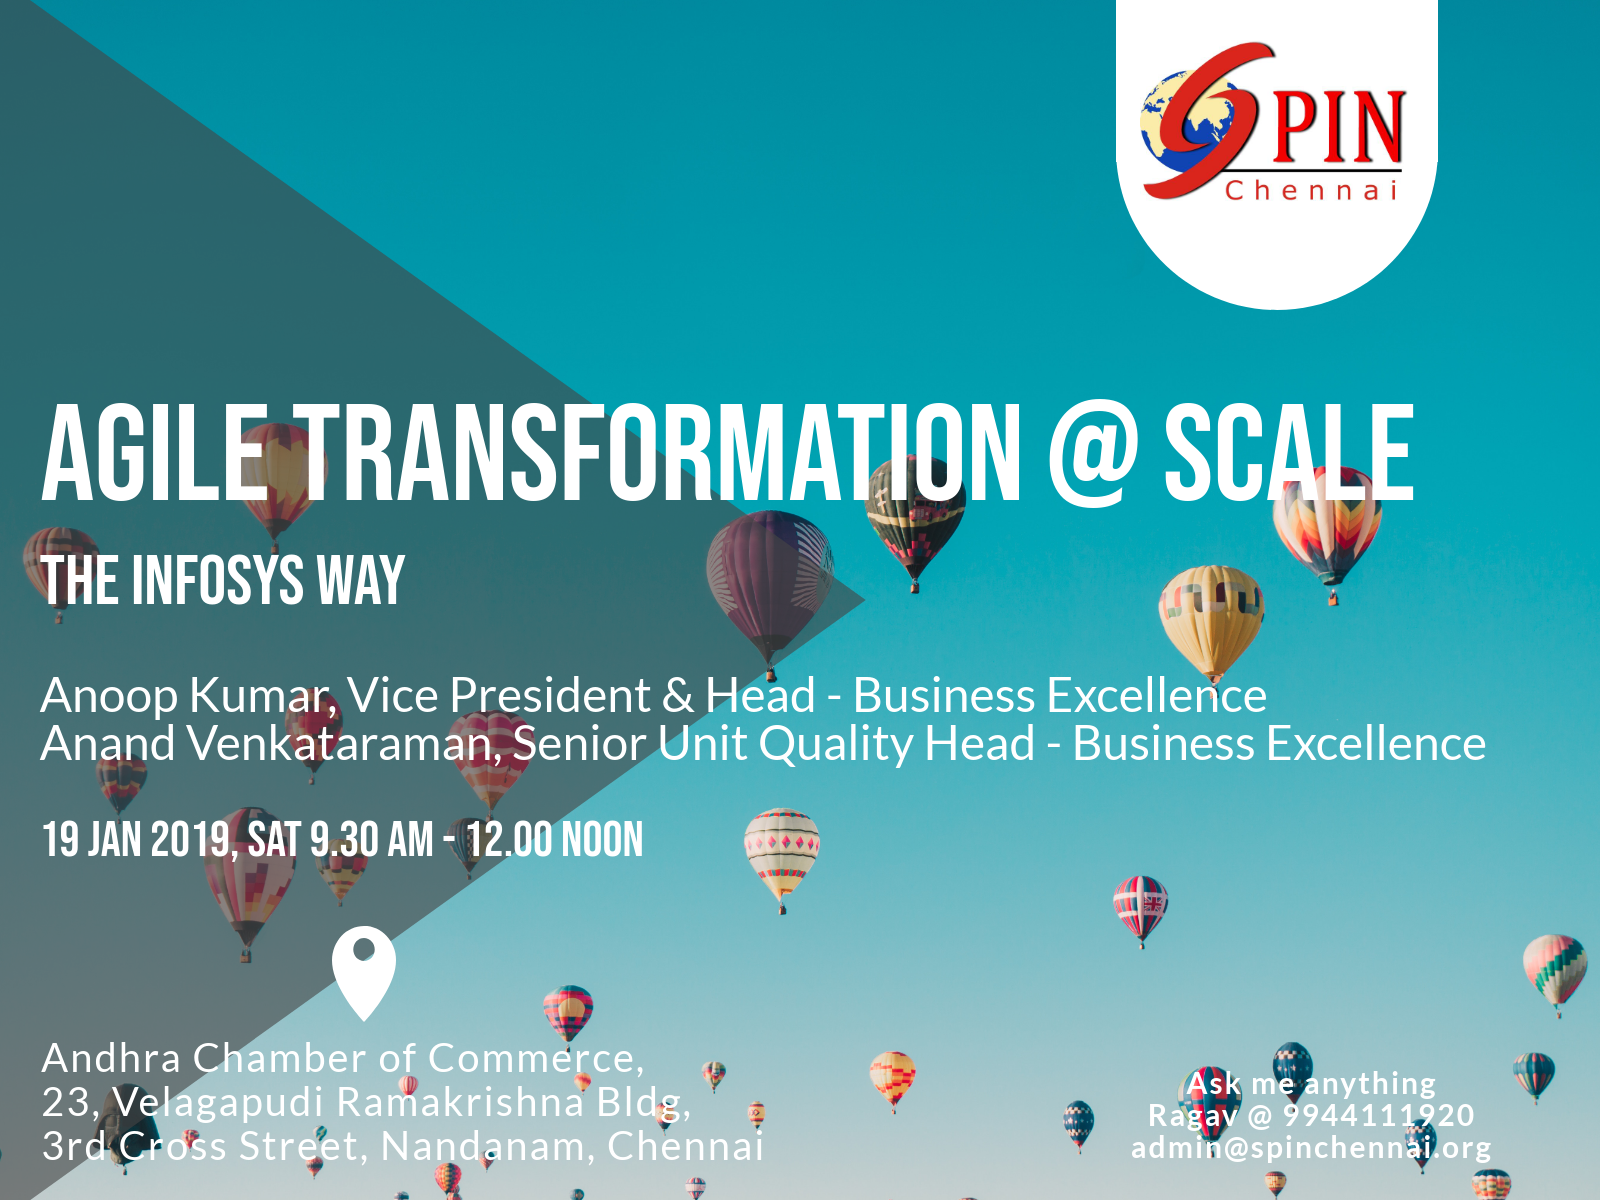 Agile Transformation at Scale - The Infosys Way